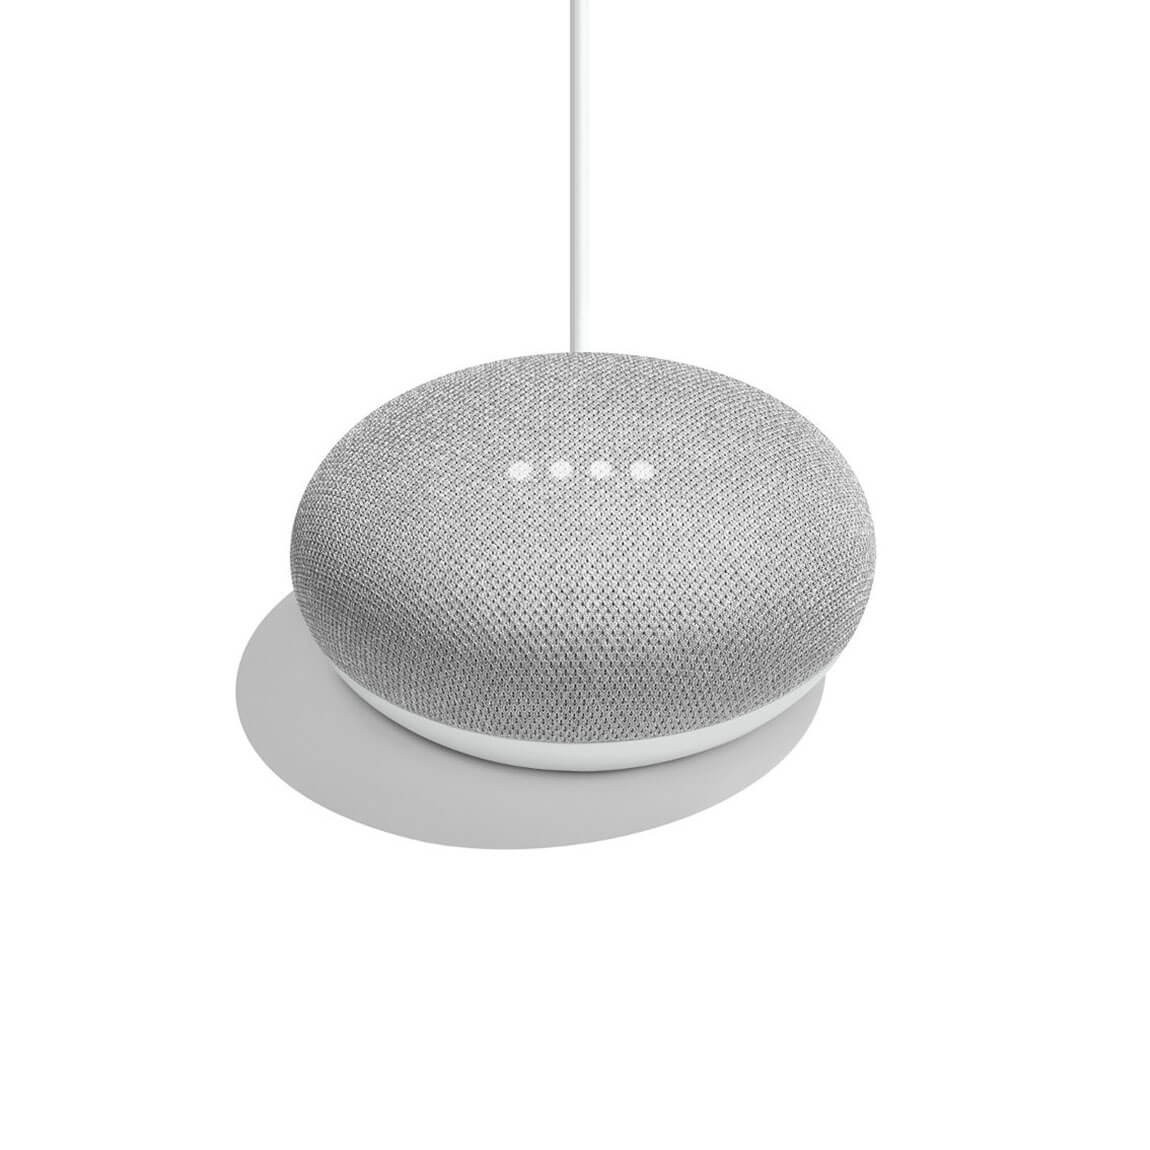 Google Home Mini in grau